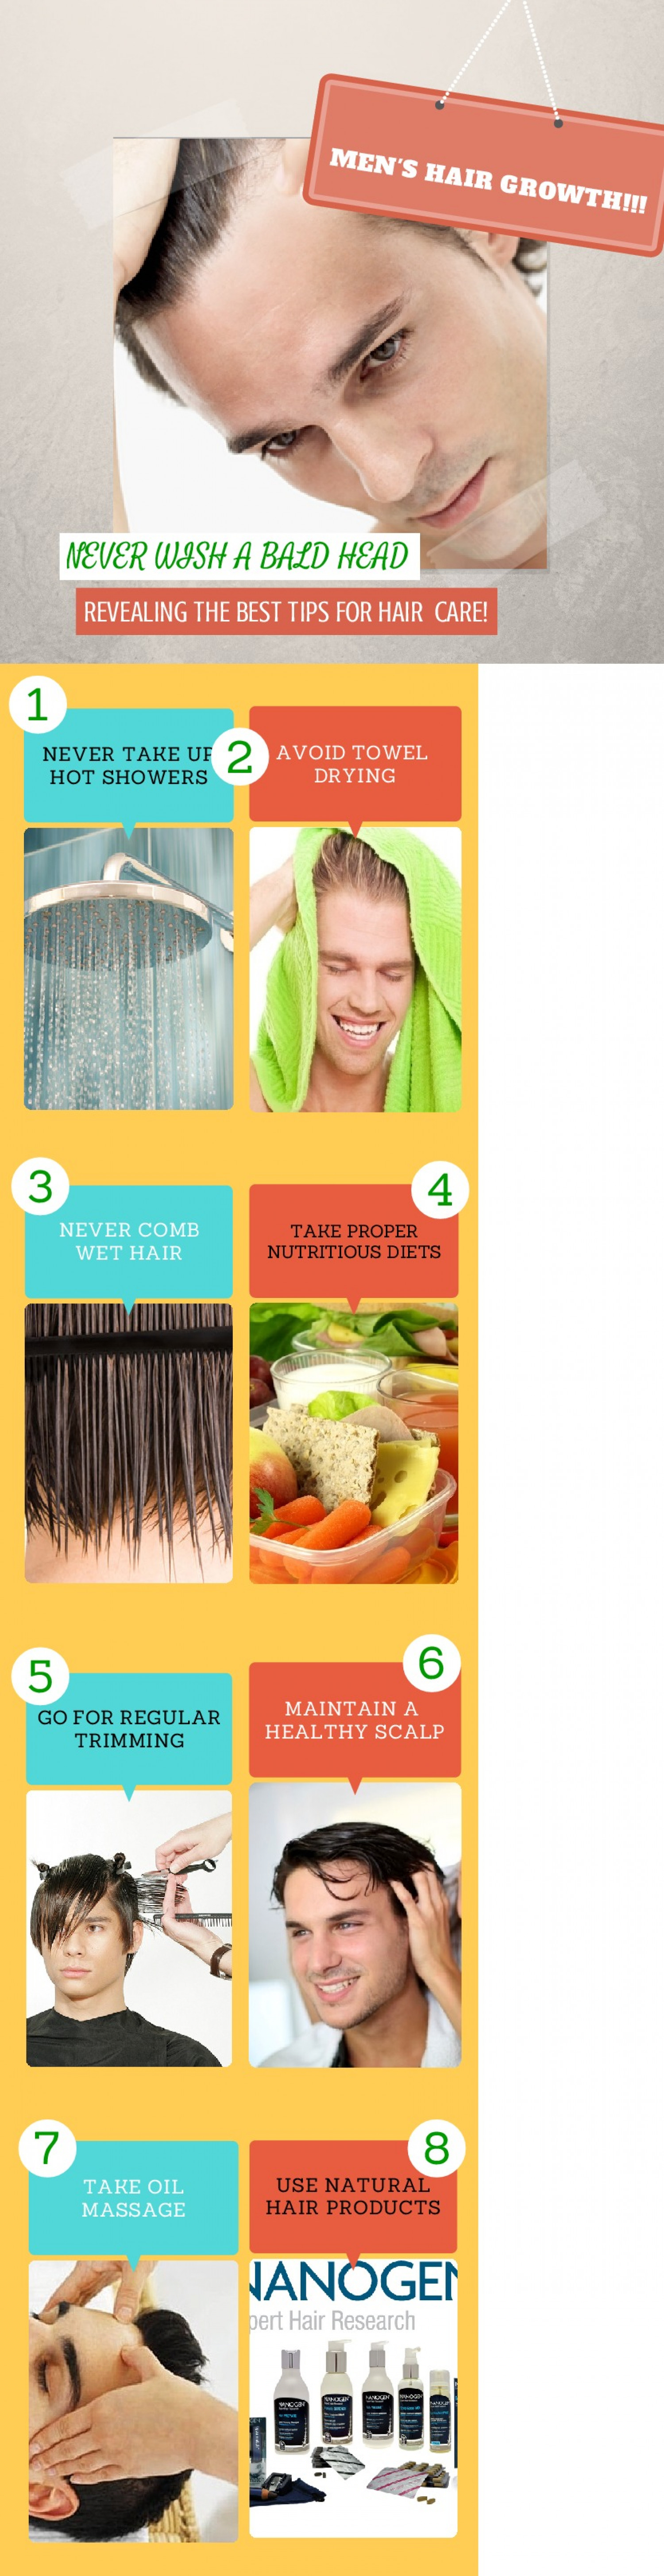 Hair Growth Tips for Men Revealed!!! Infographic